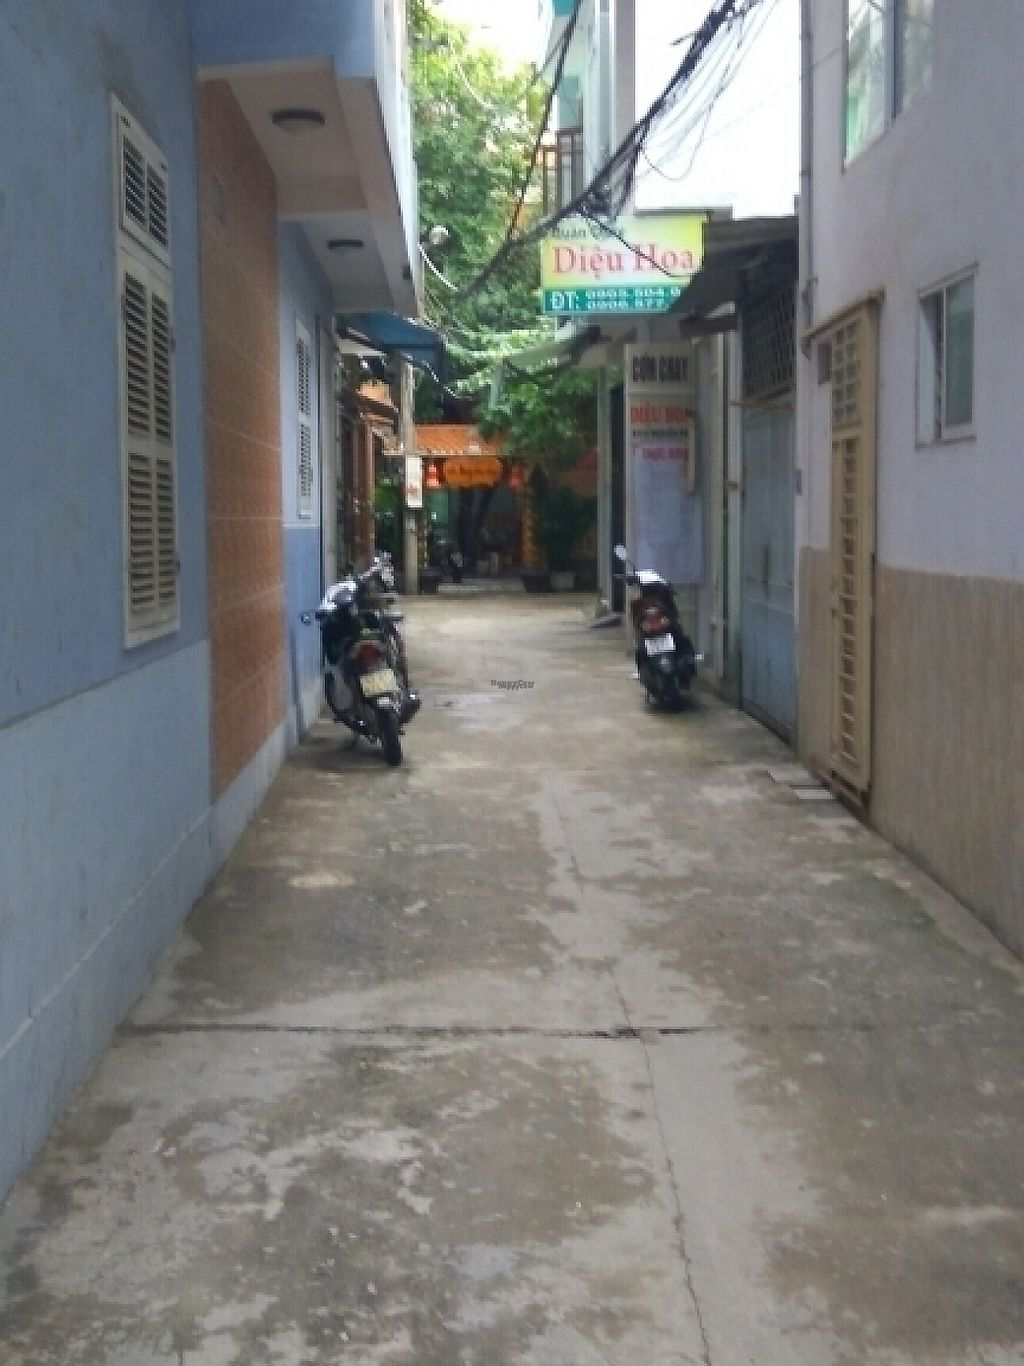 """Photo of Da Nang Com Chay  by <a href=""""/members/profile/Miggi"""">Miggi</a> <br/>view down alley (with another restaurant on right) <br/> January 5, 2017  - <a href='/contact/abuse/image/84999/208339'>Report</a>"""